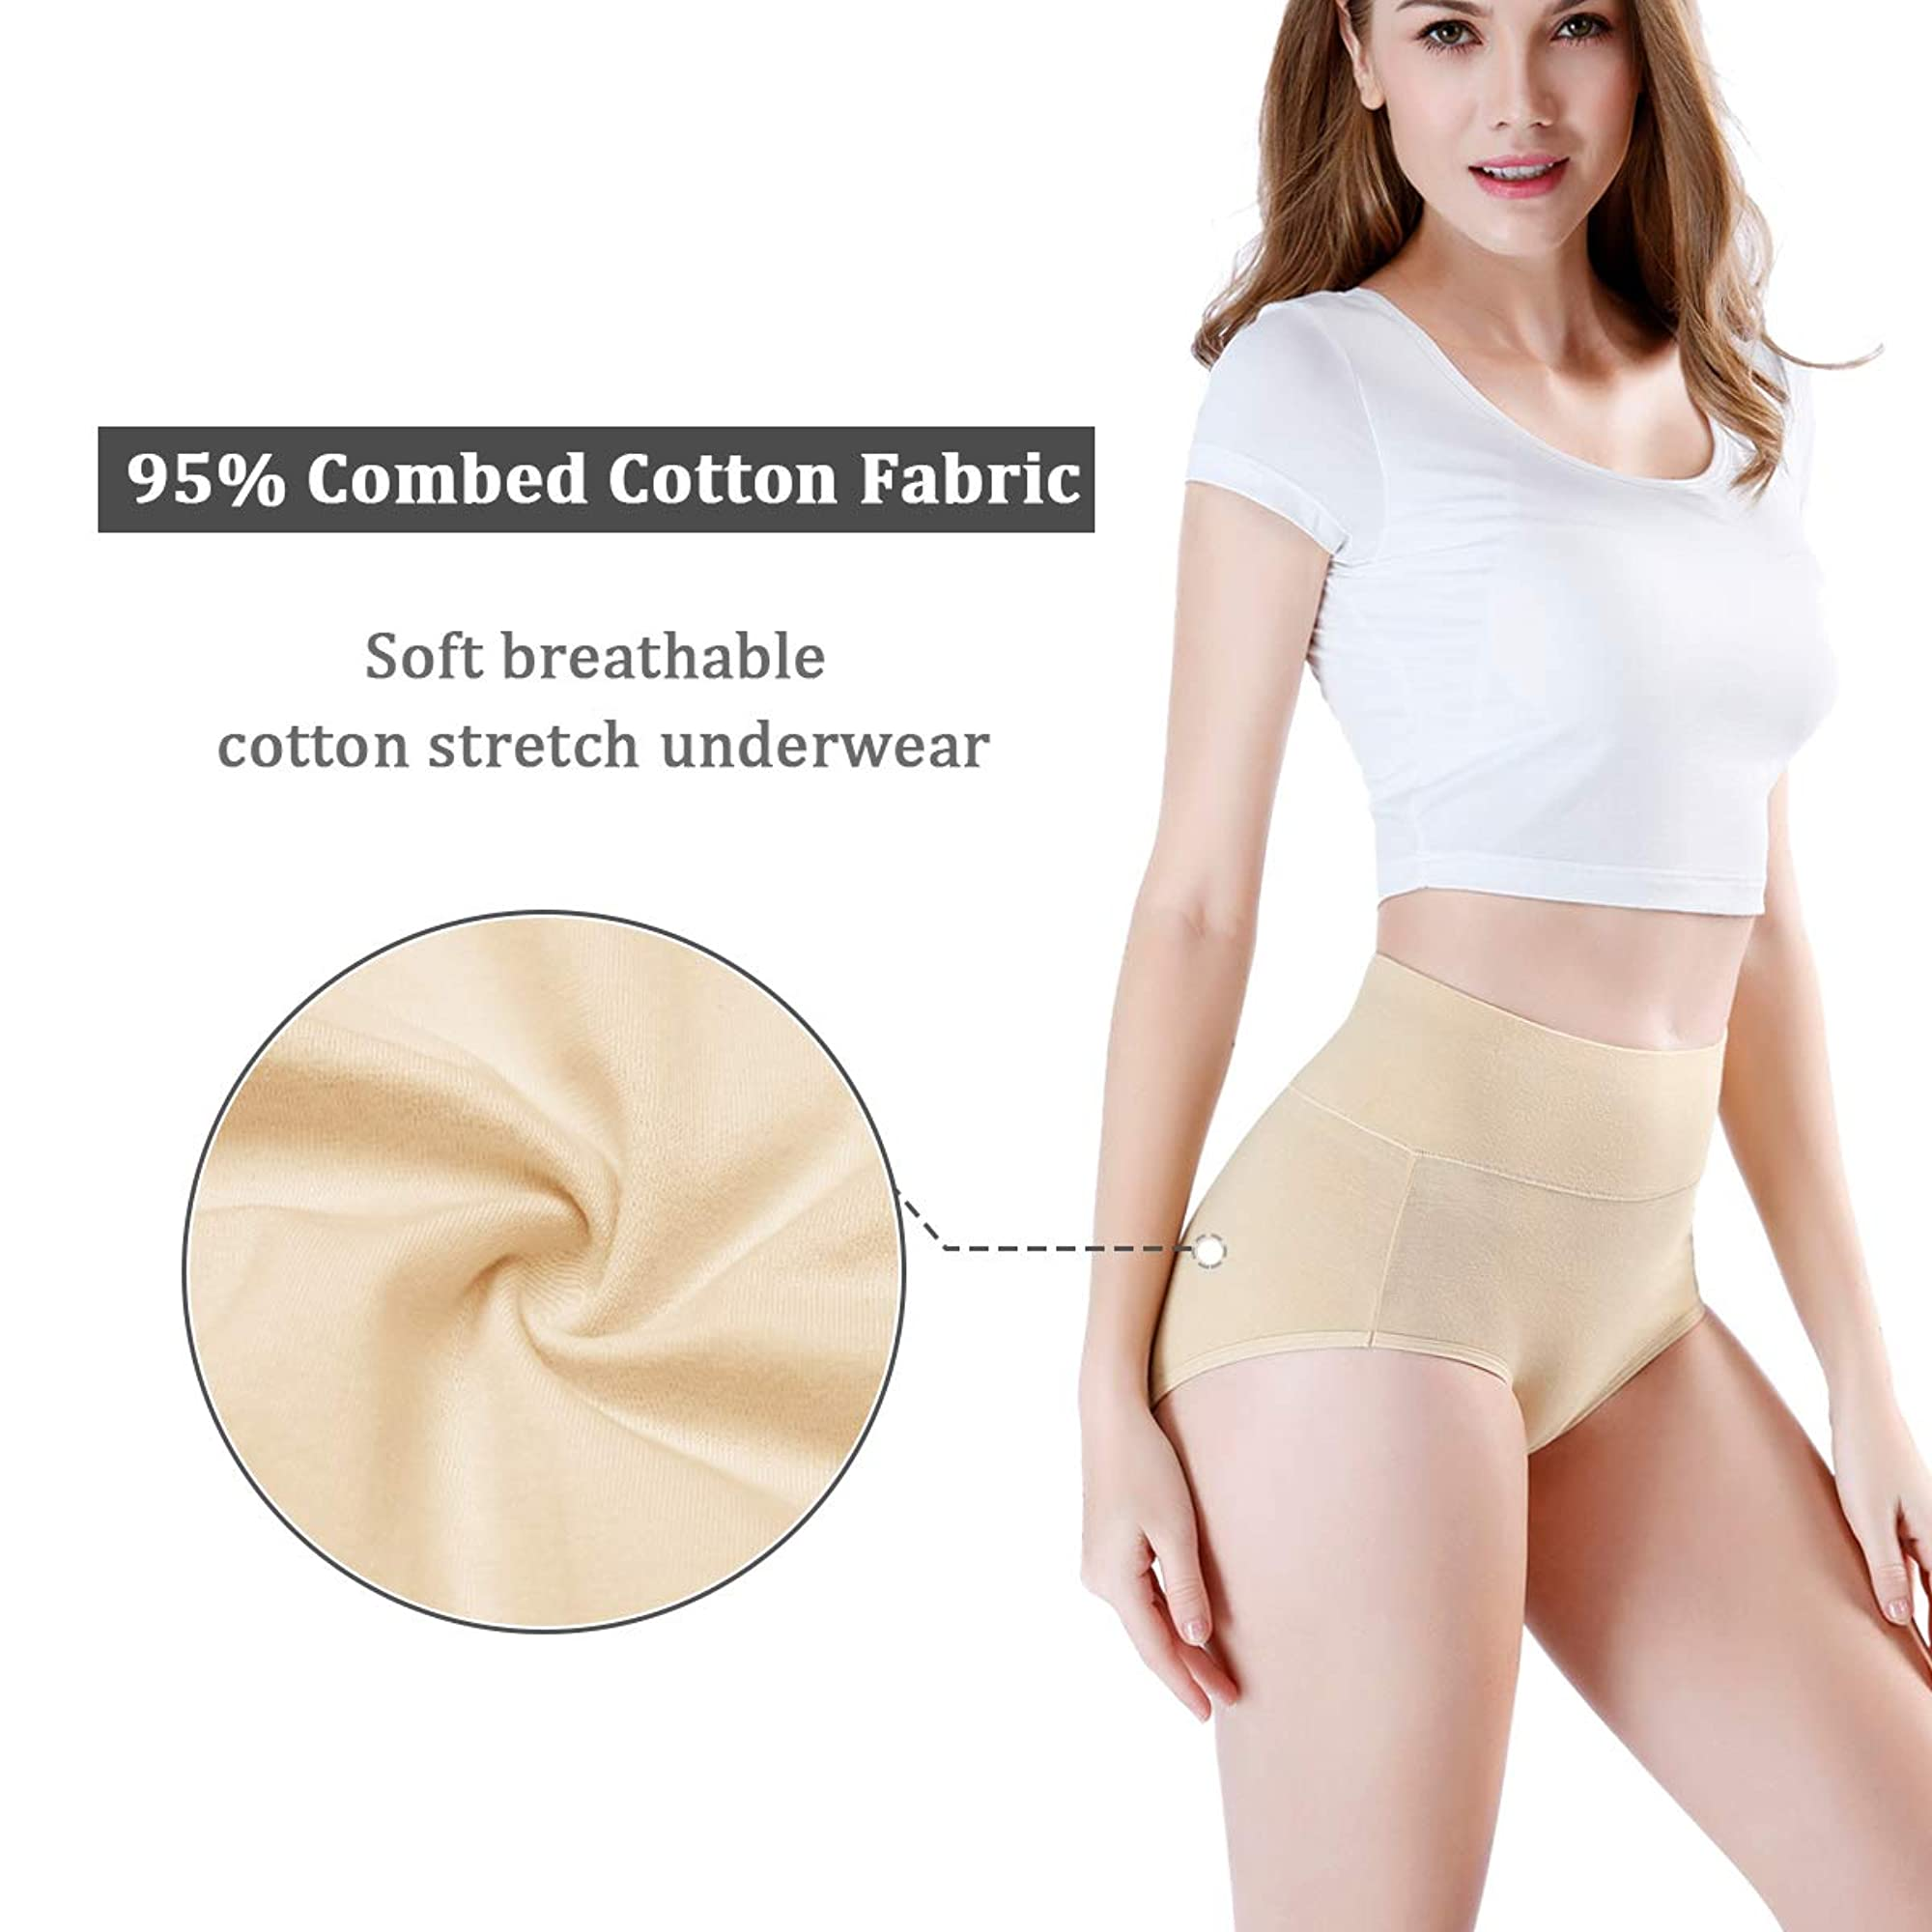 High Waisted Cotton Underwear For Women